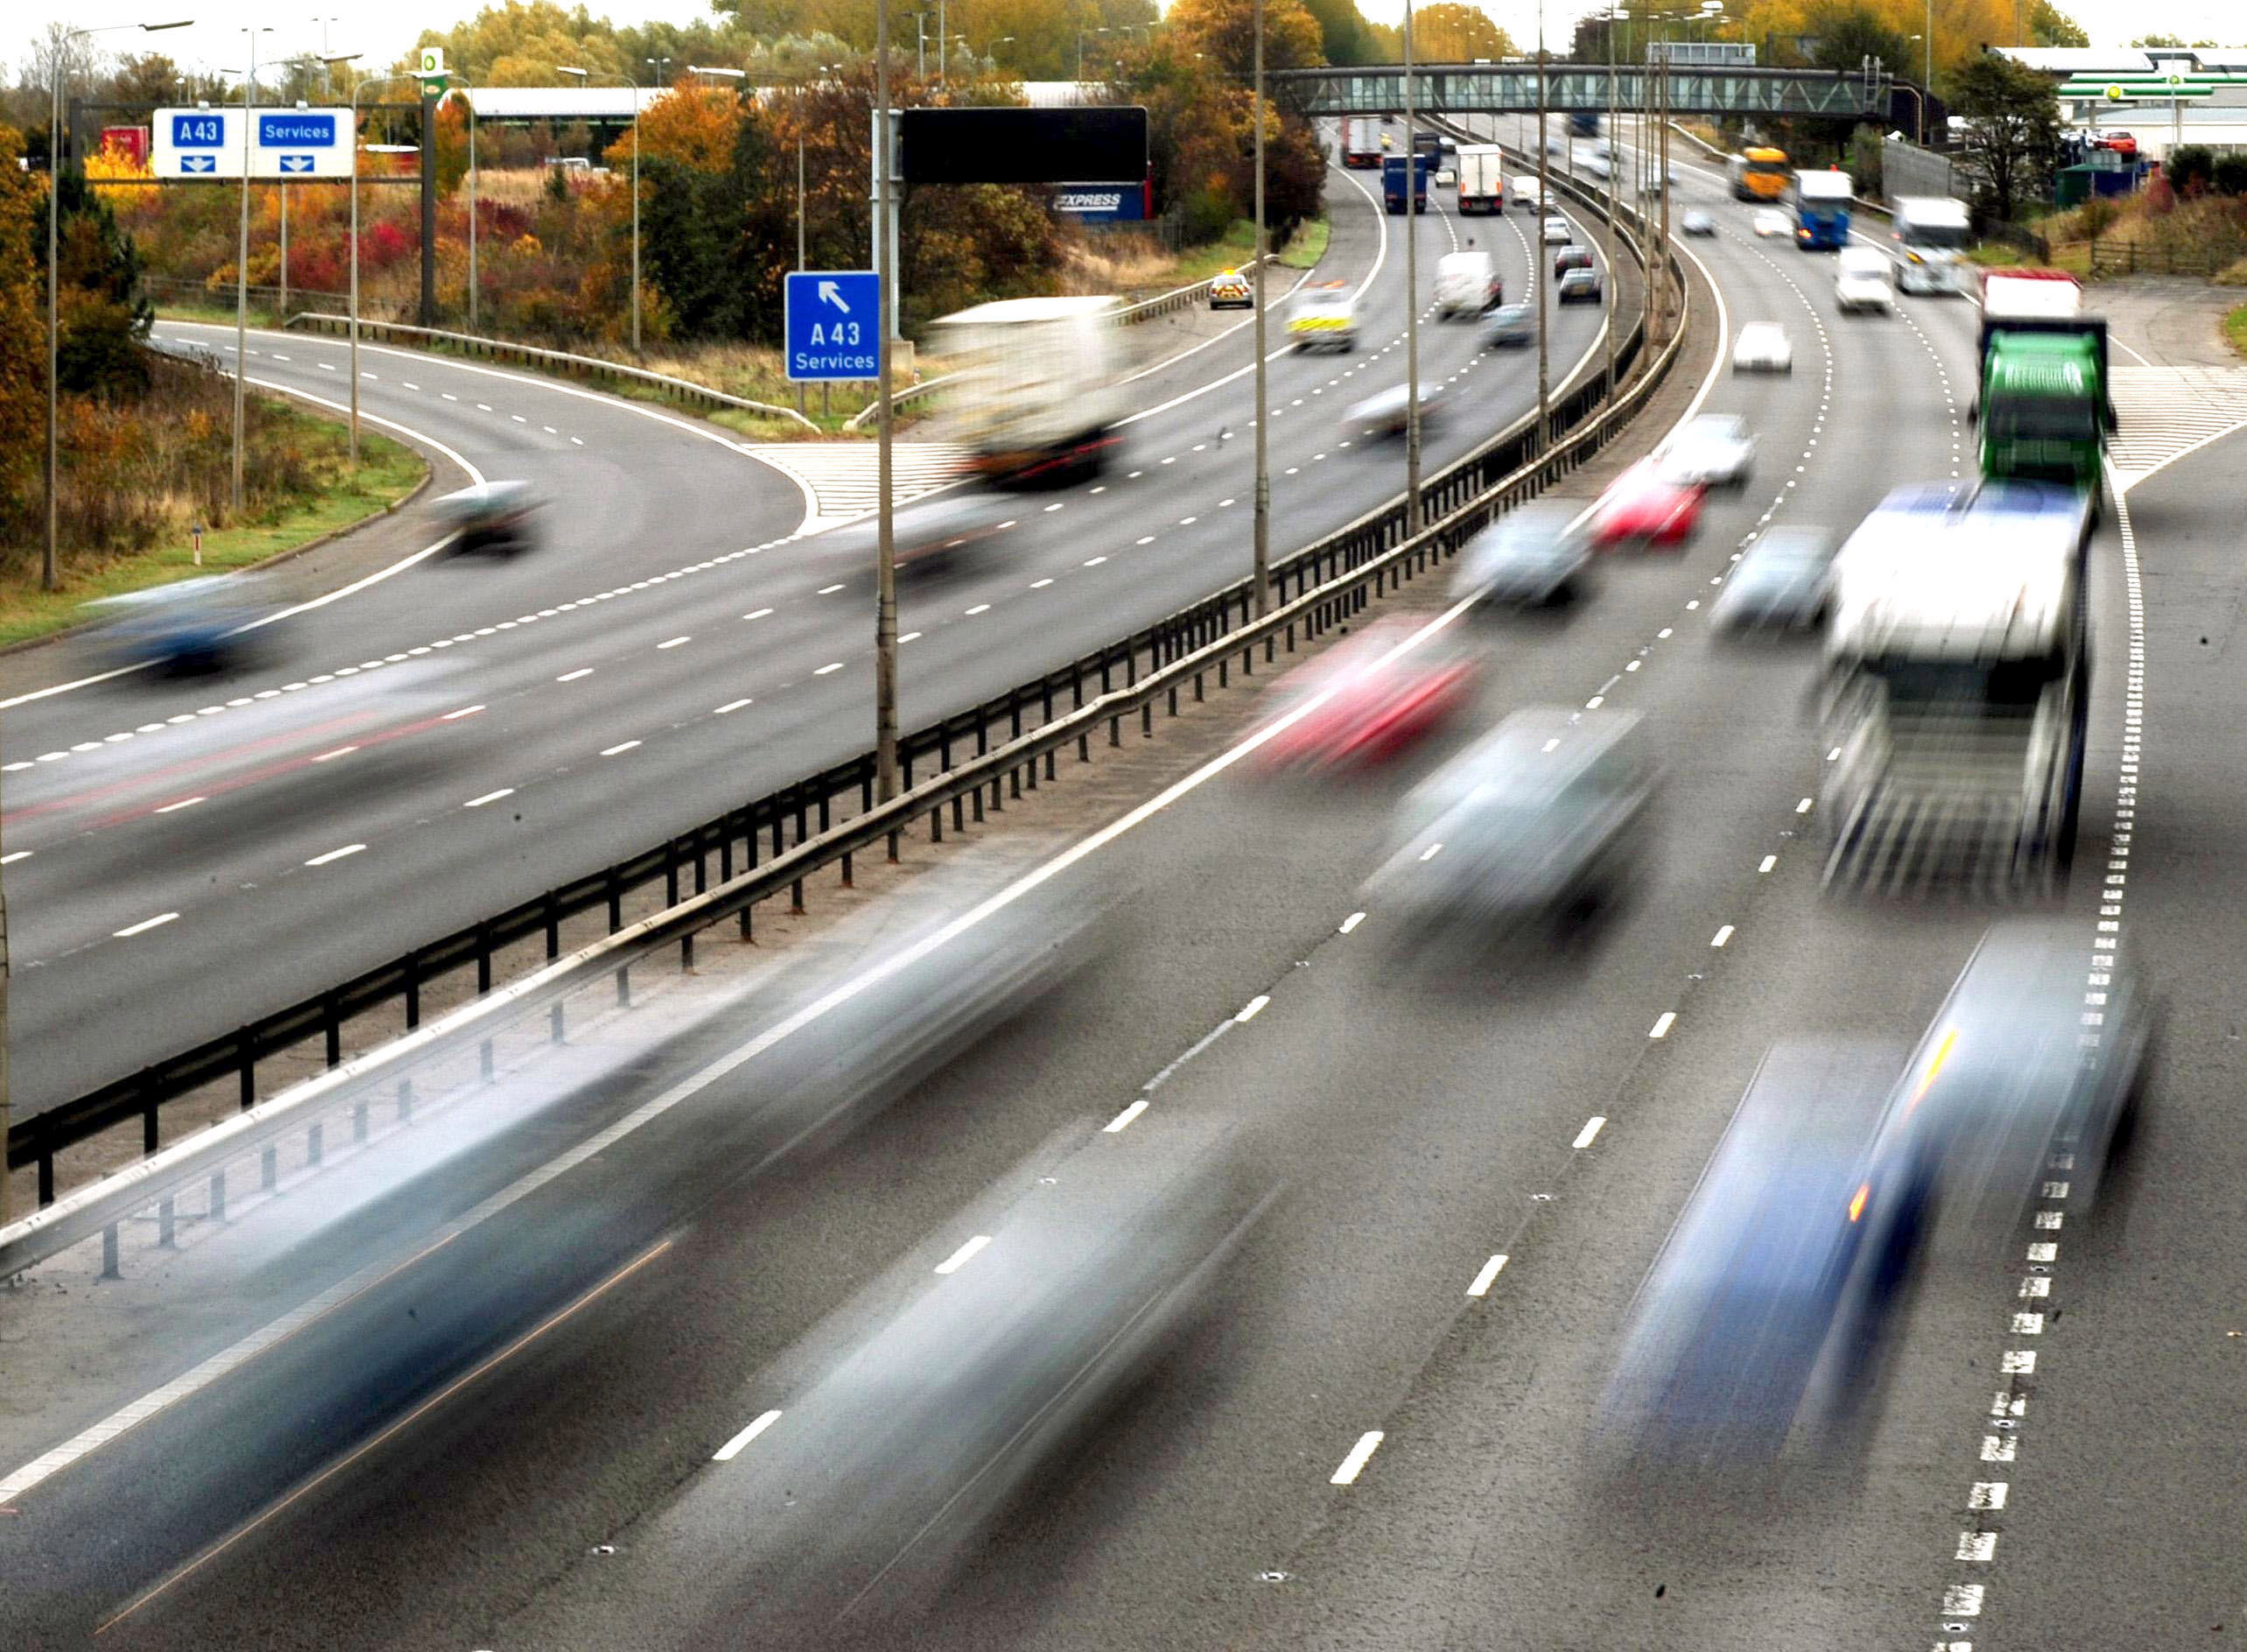 Drivers have just a minute to react to speed limit changes before being fined